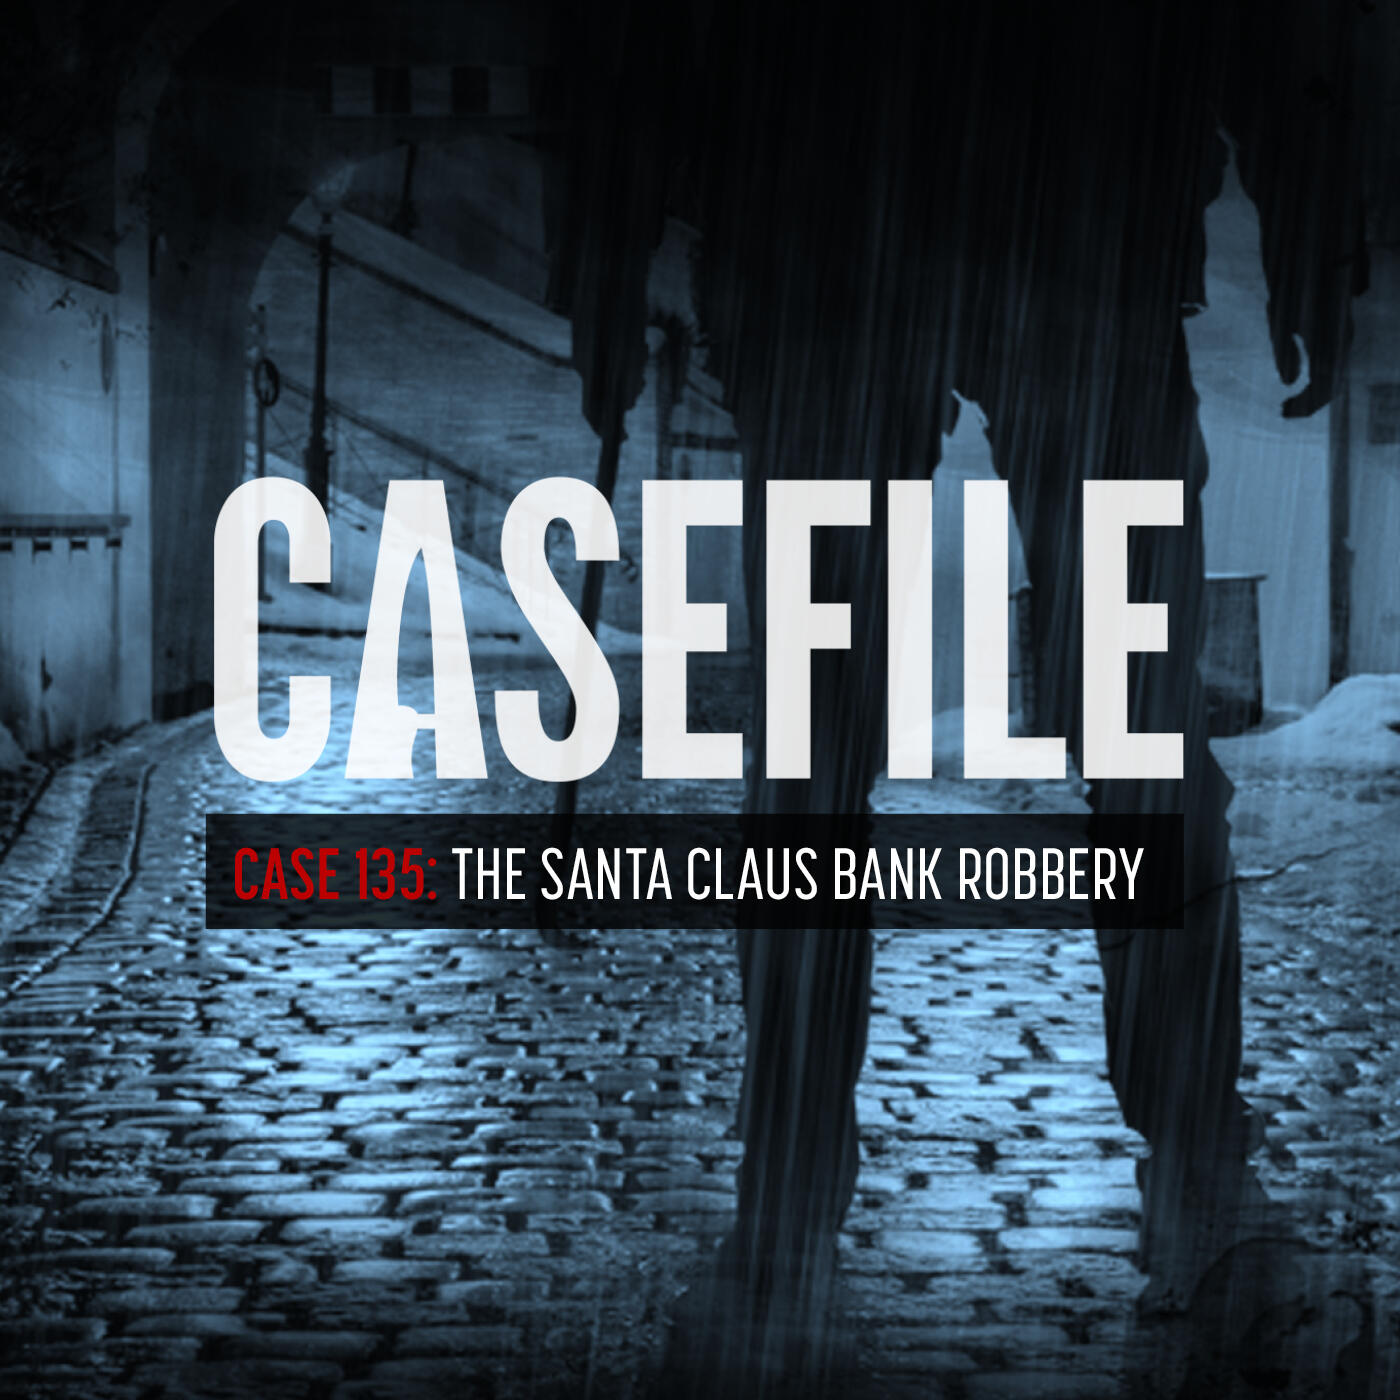 Case 135: The Santa Claus Bank Robbery